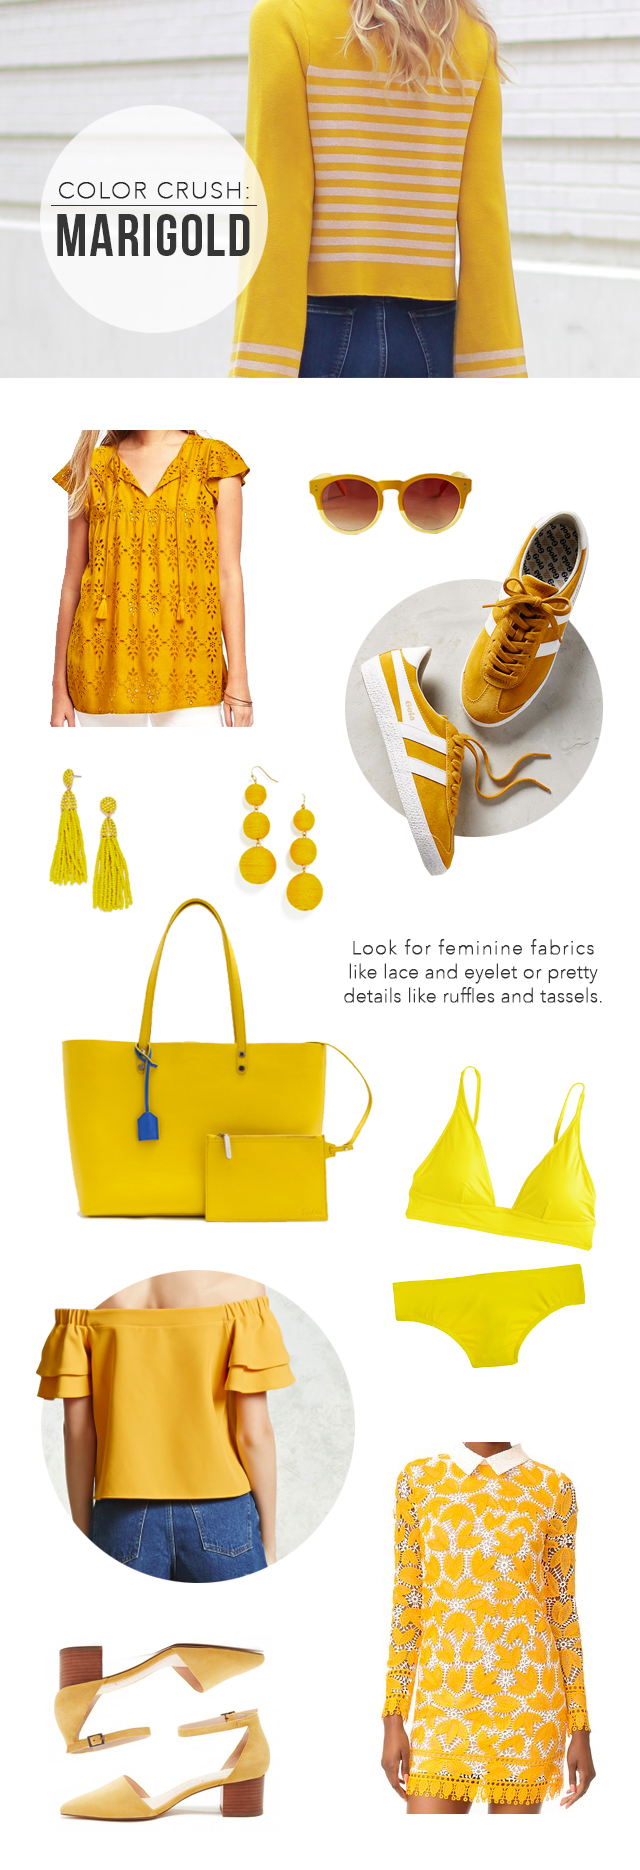 The Steele Maiden: Spring Color Crush - Marigold Yellow